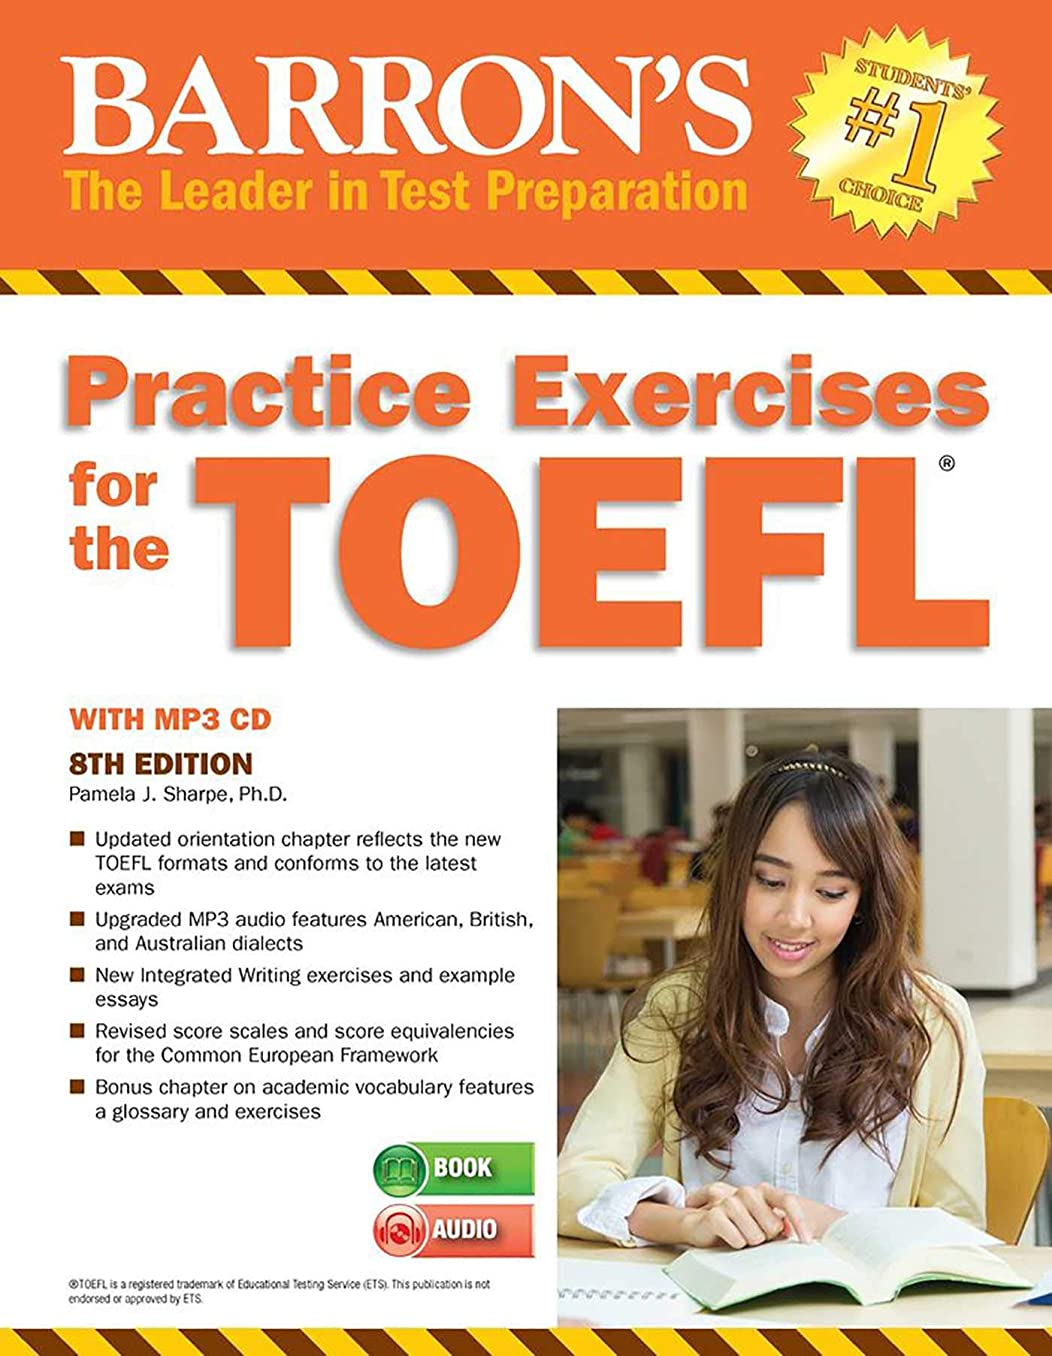 写真を描く貫入ベジタリアンPractice Exercises for the TOEFL with MP3 CD (Barron's Practice Exercises for the TOEFL)